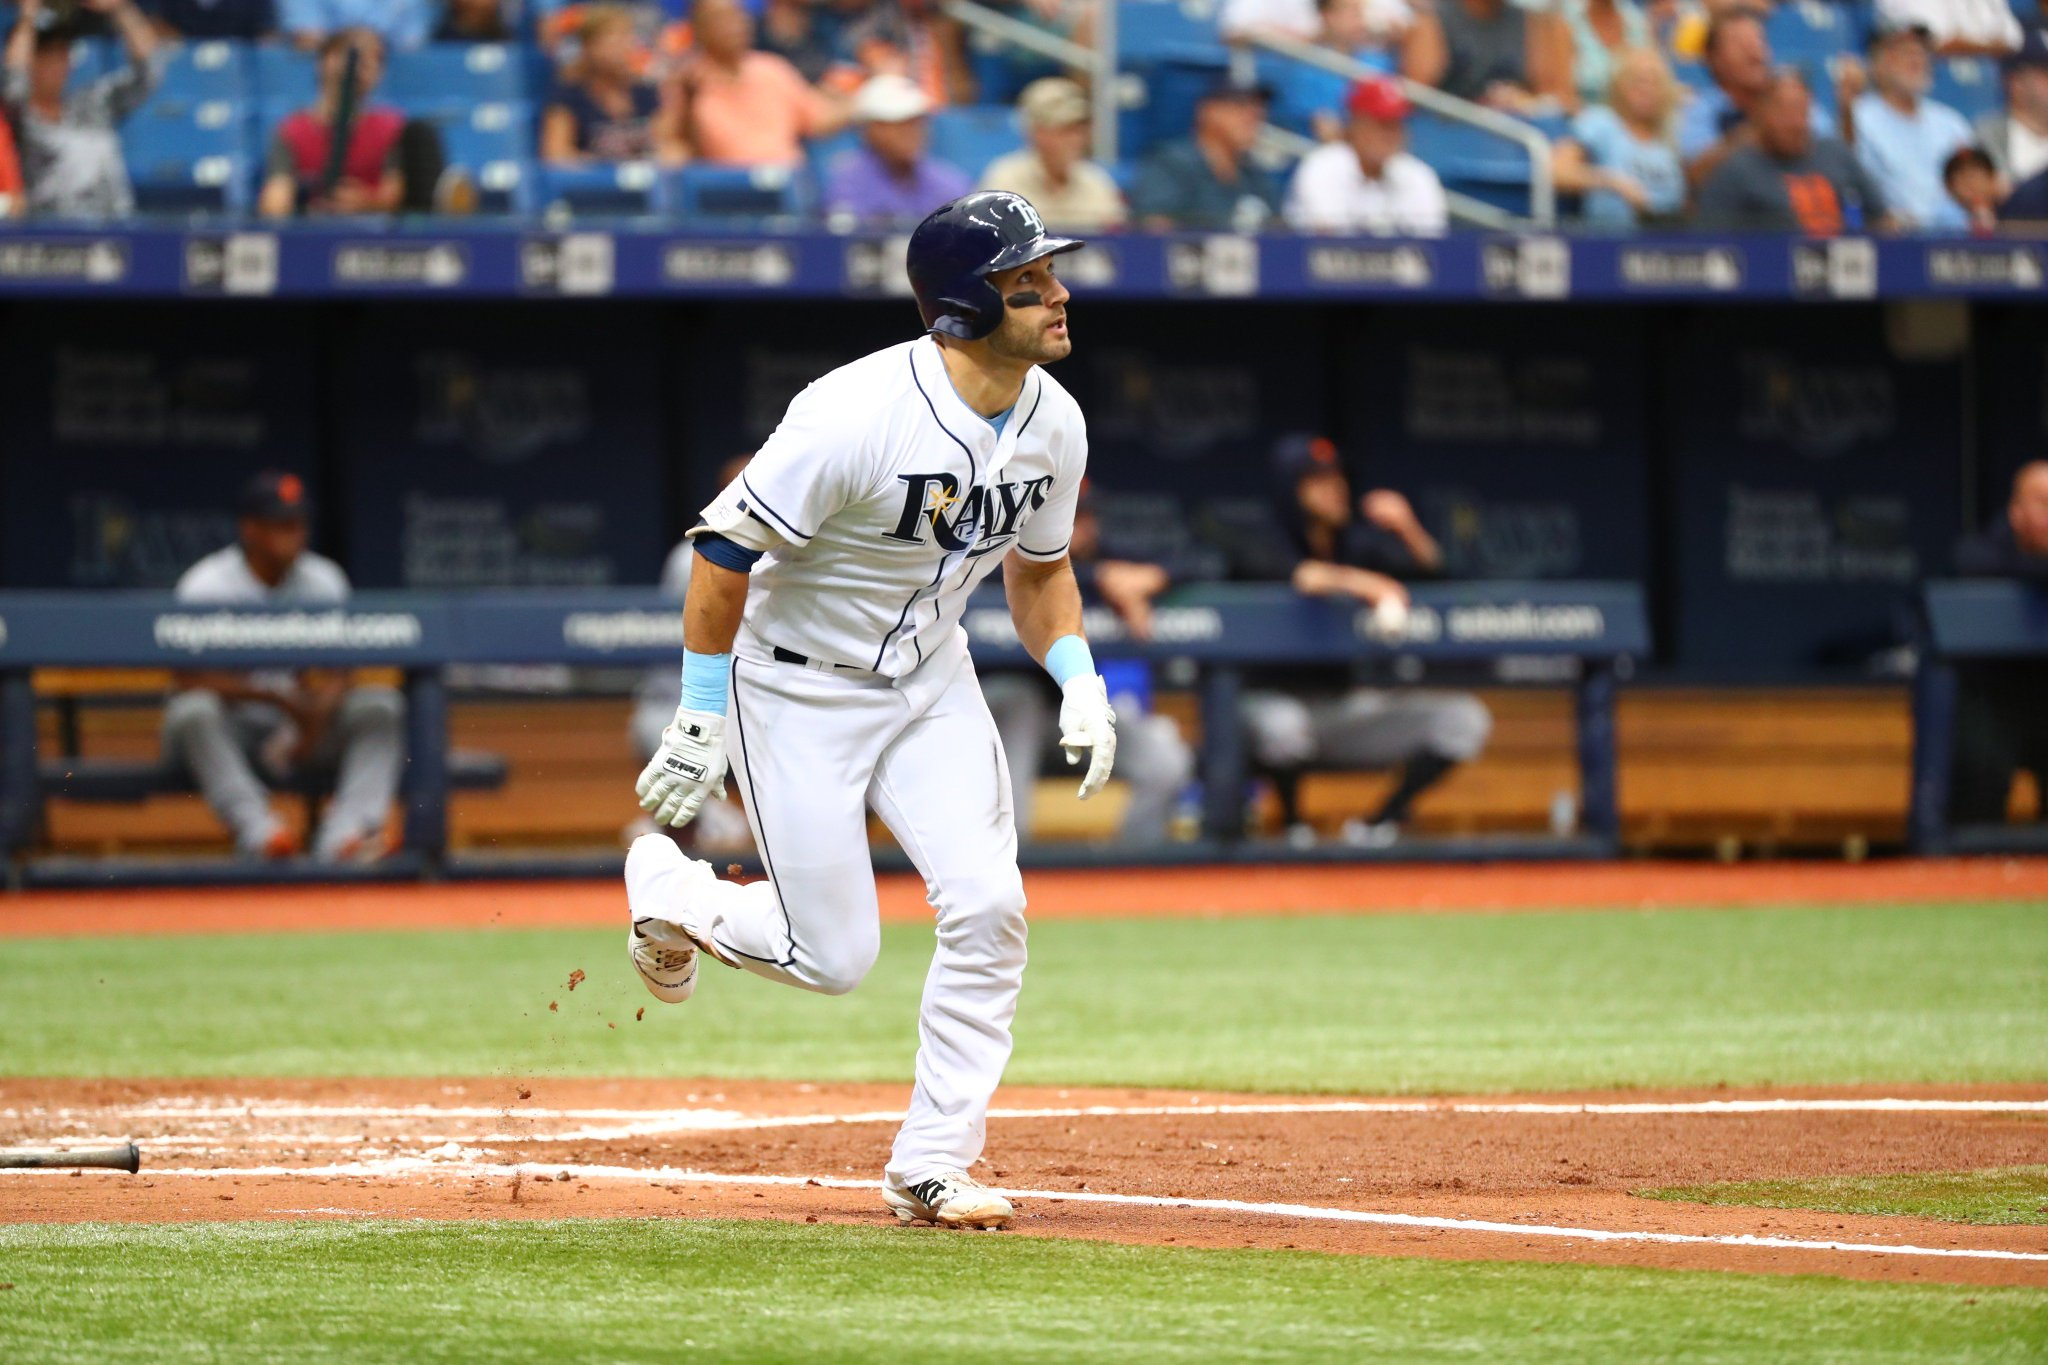 Outlaw. Outta here.  #RaysUp https://t.co/FSqfVDaYaK